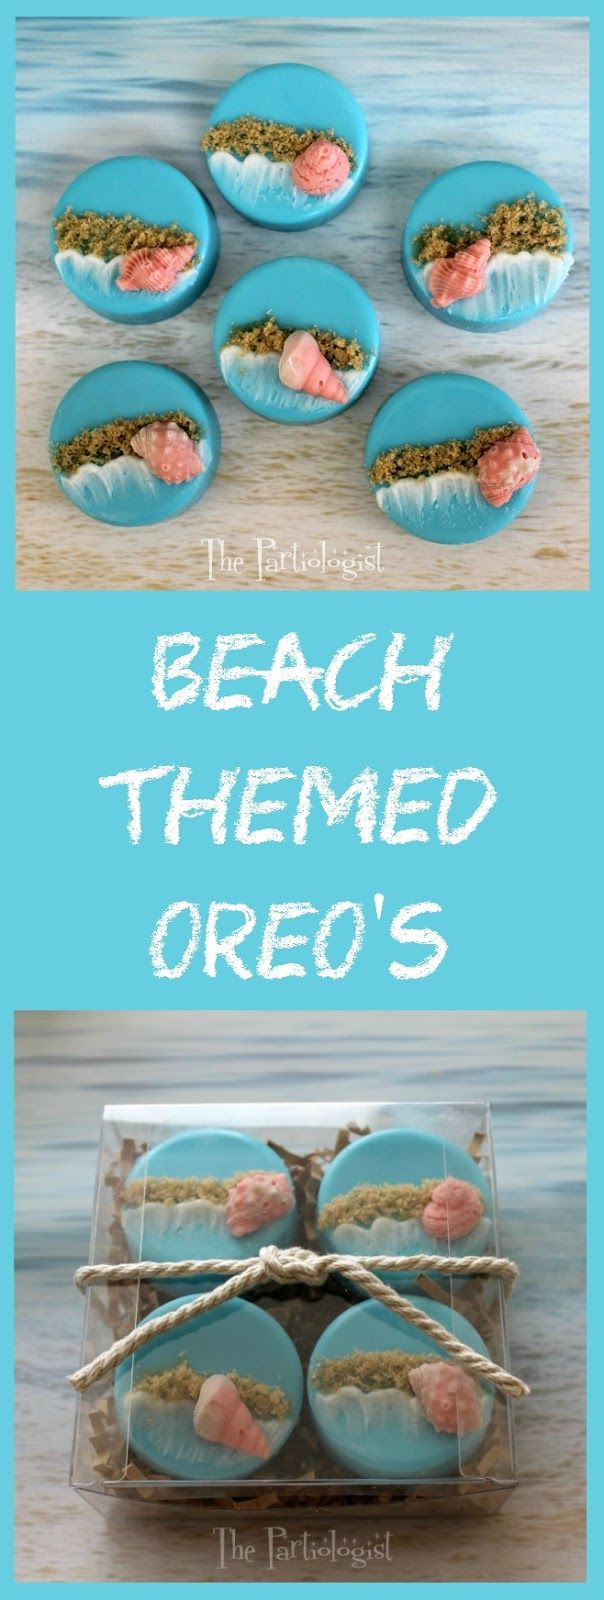 Beach Themed Oreo's, perfect for a summer wedding favor or any beach themed event! Melt Wilton blue Candy Melts to cover the Oreos. - From thepartiologist.com